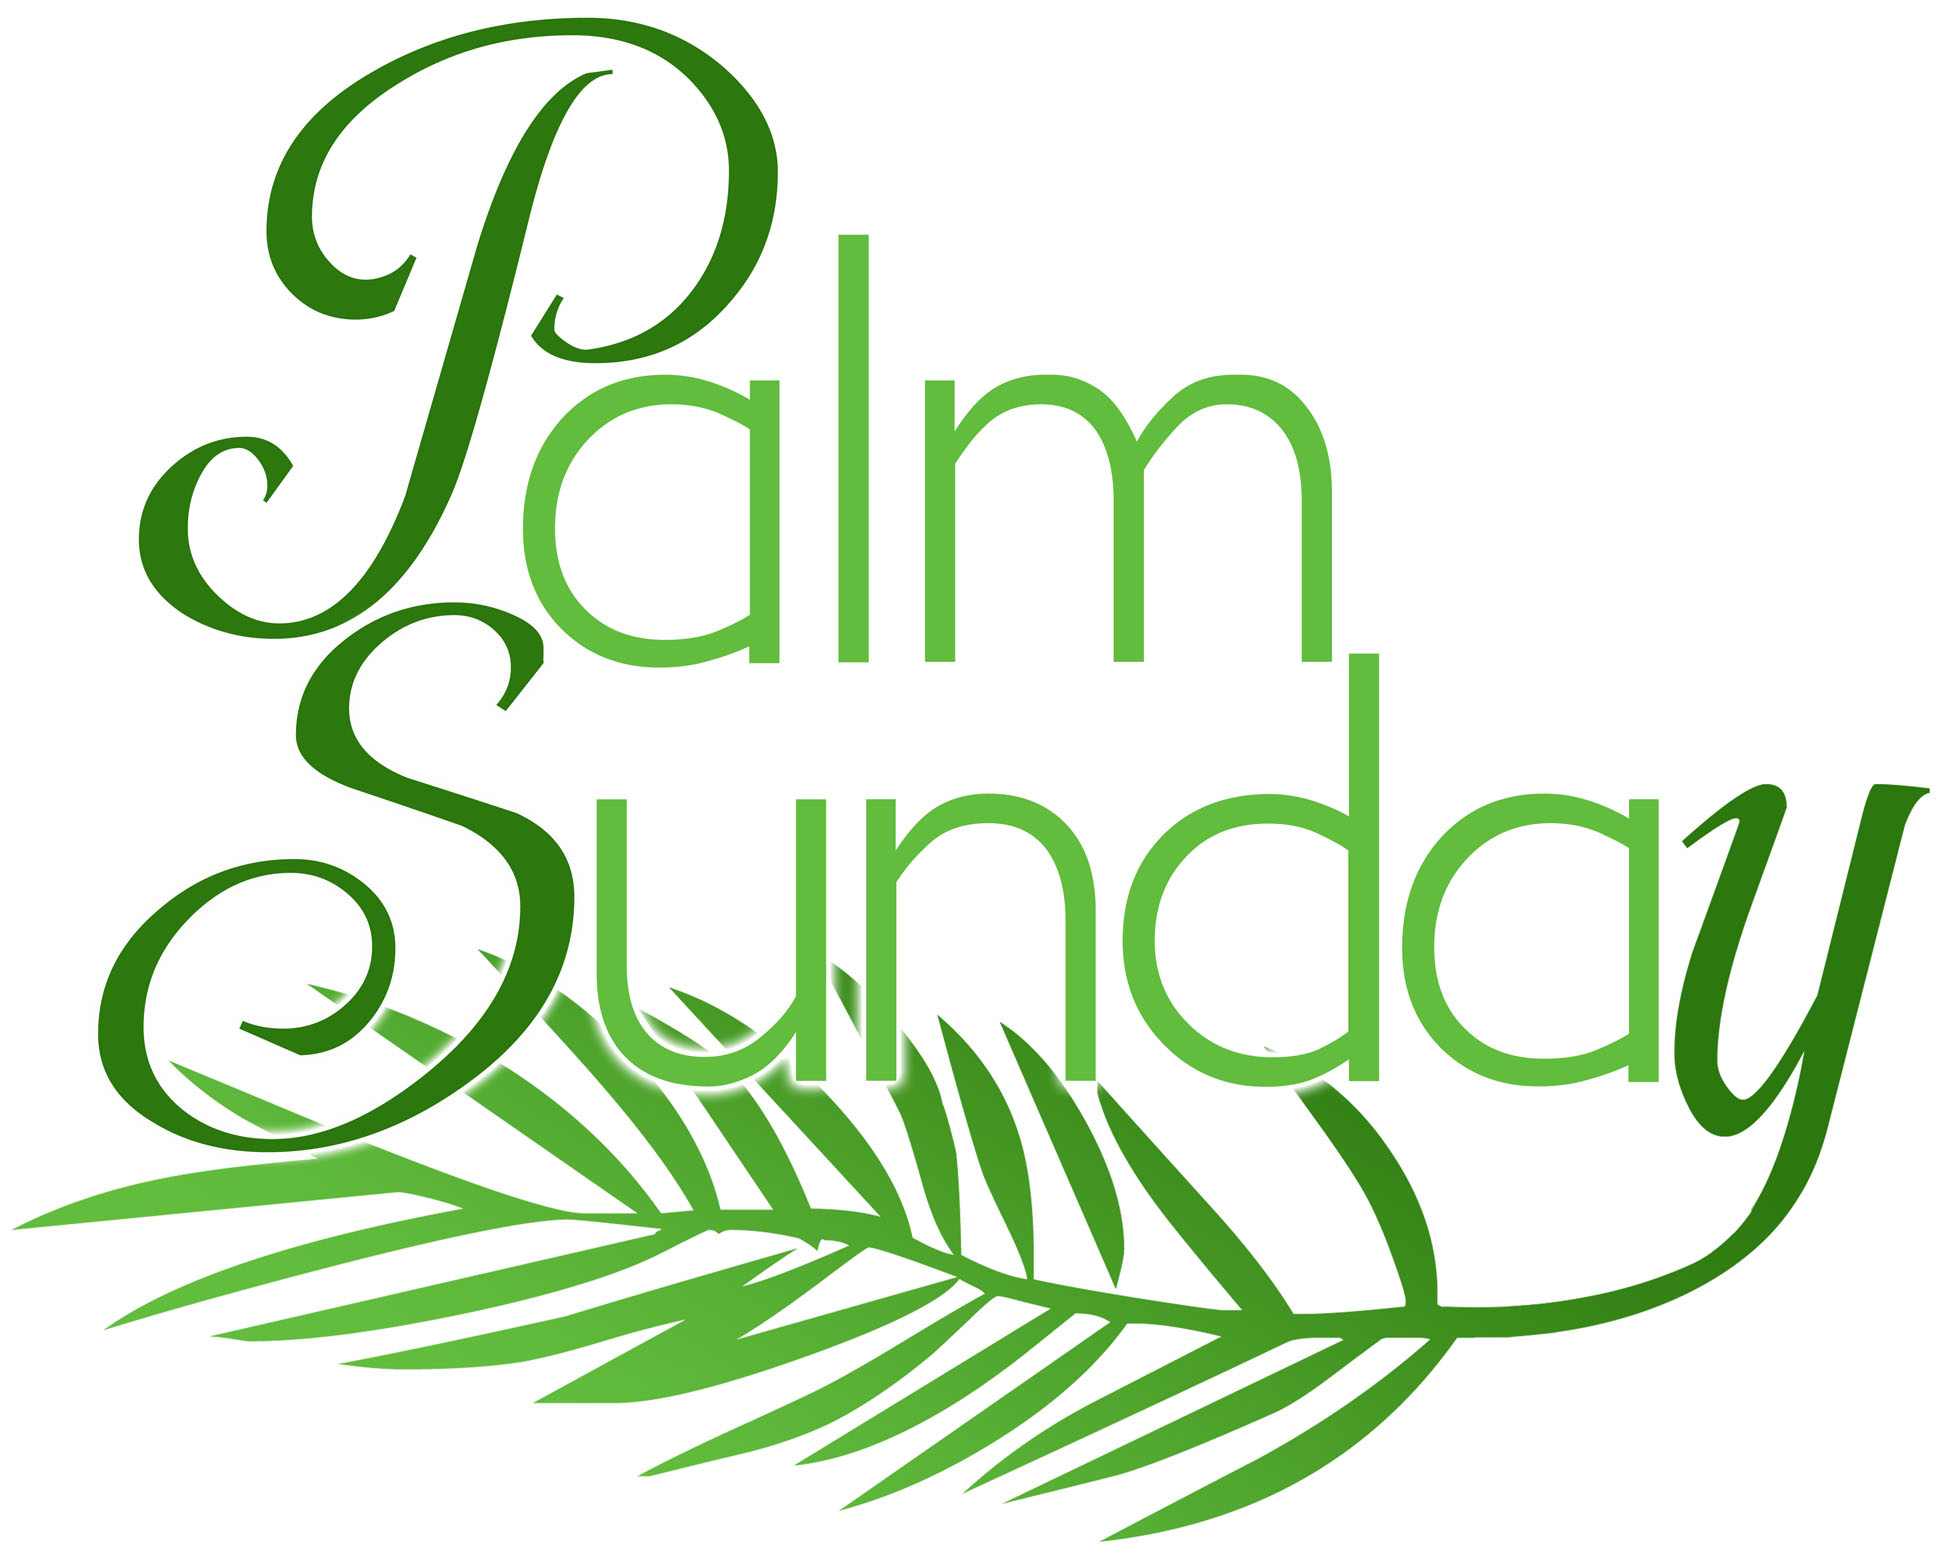 Passion Sunday Png & Free Passion Sunday.png Transparent.